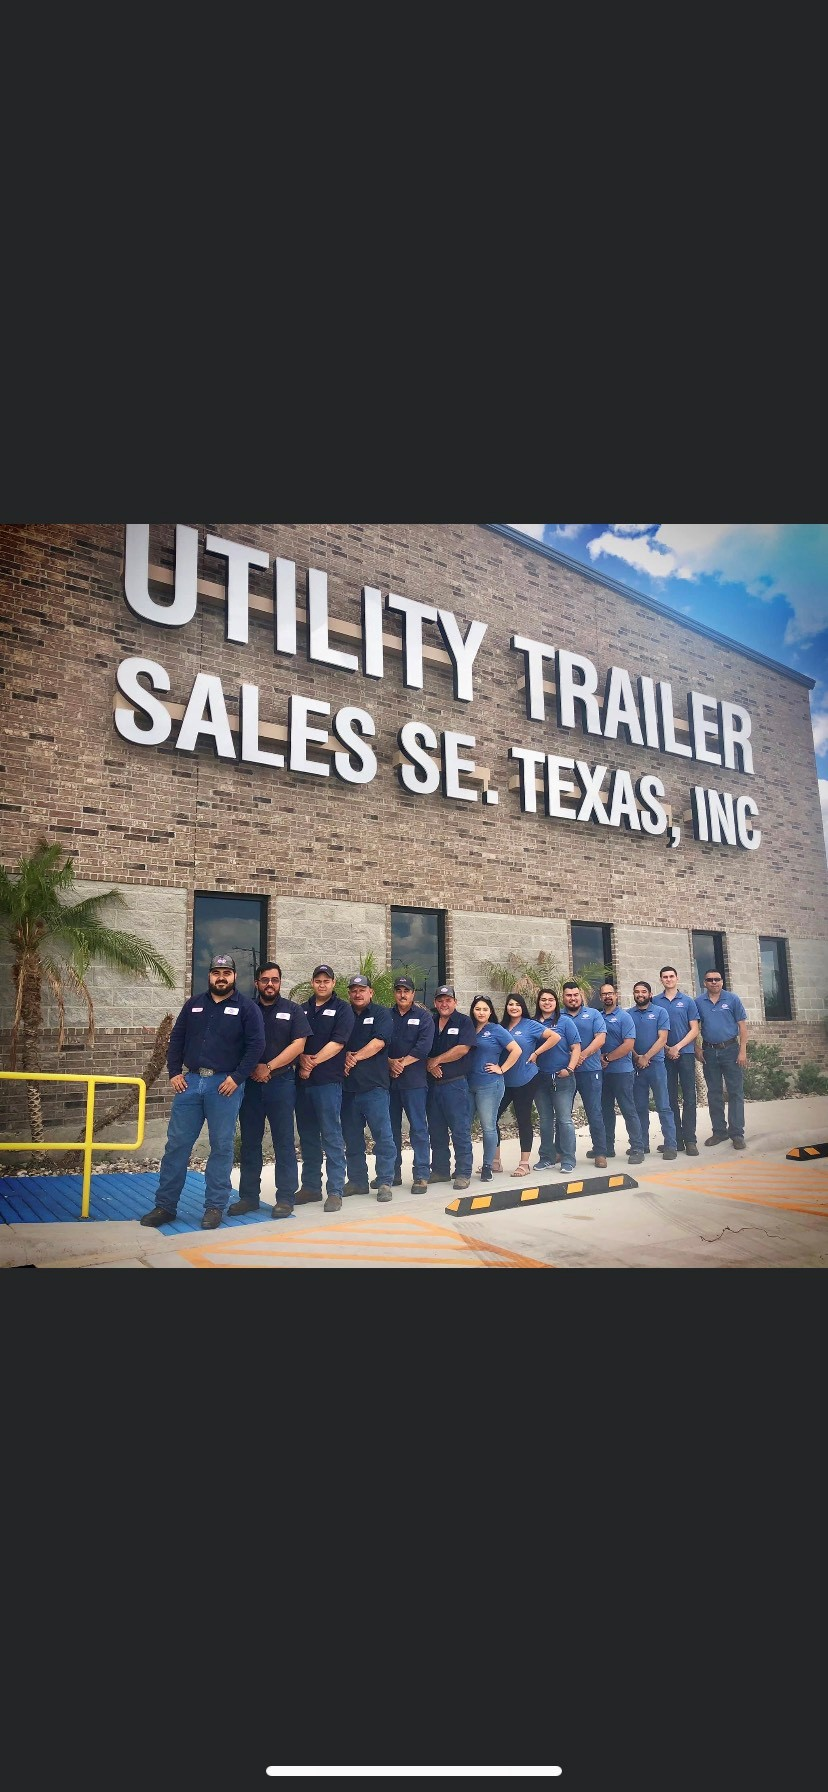 Utility Trailer Sales Southeast Texas, Inc reviews | Trailer Dealers at 5395 US Highway 57 - Eagle Pass TX